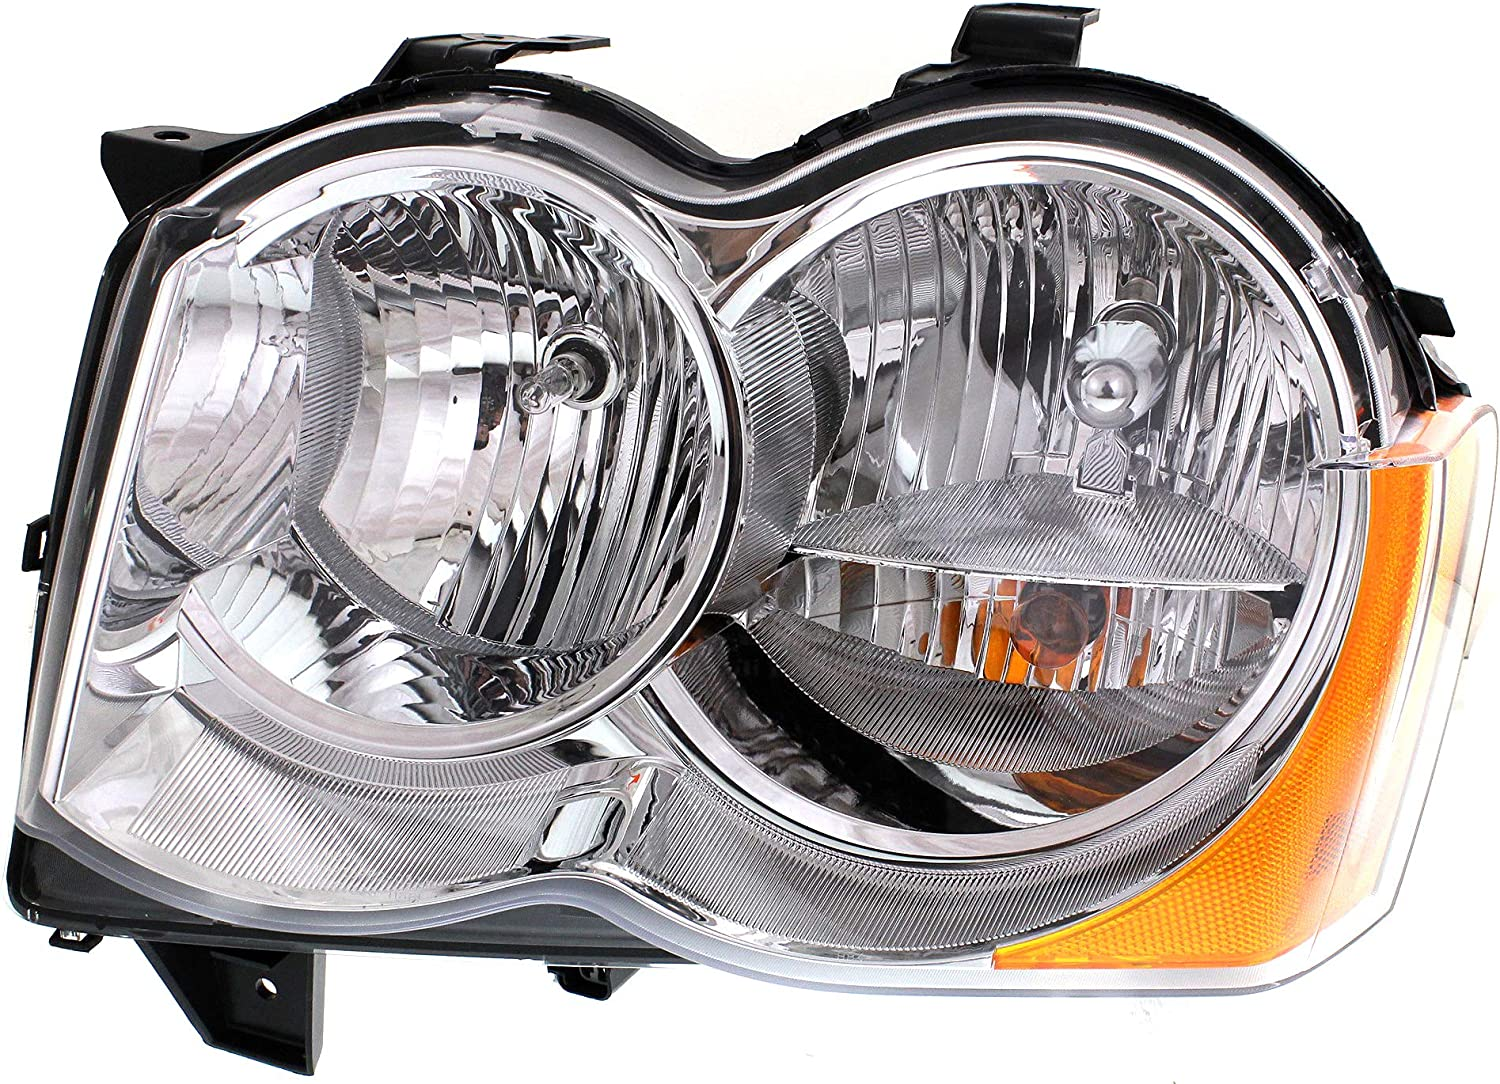 Garage-Pro Headlight Compatible with CHEROKEE sold out 2008-20 Animer and price revision JEEP GRAND